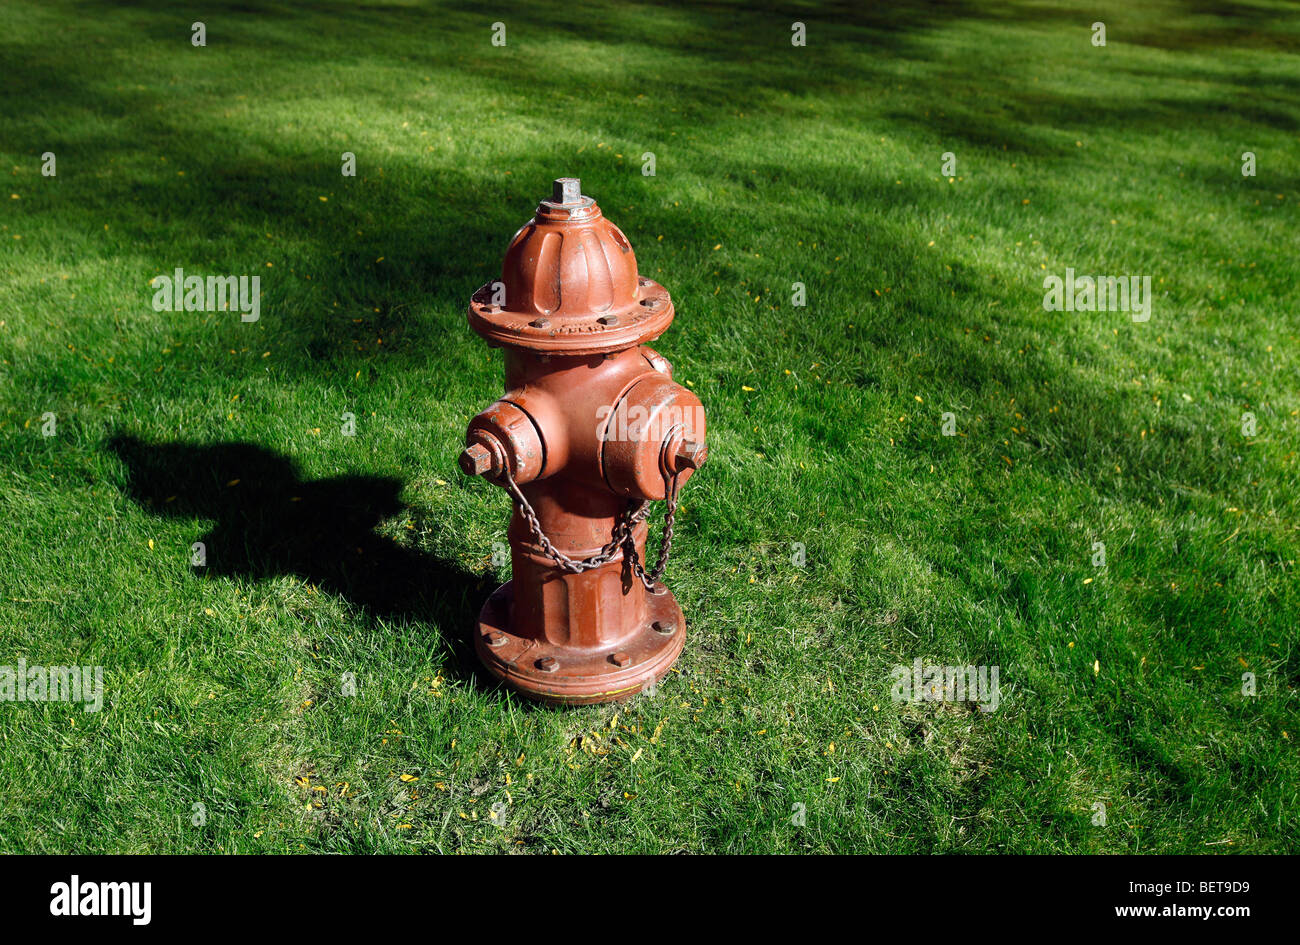 red fire hydrant green lawn - Stock Image